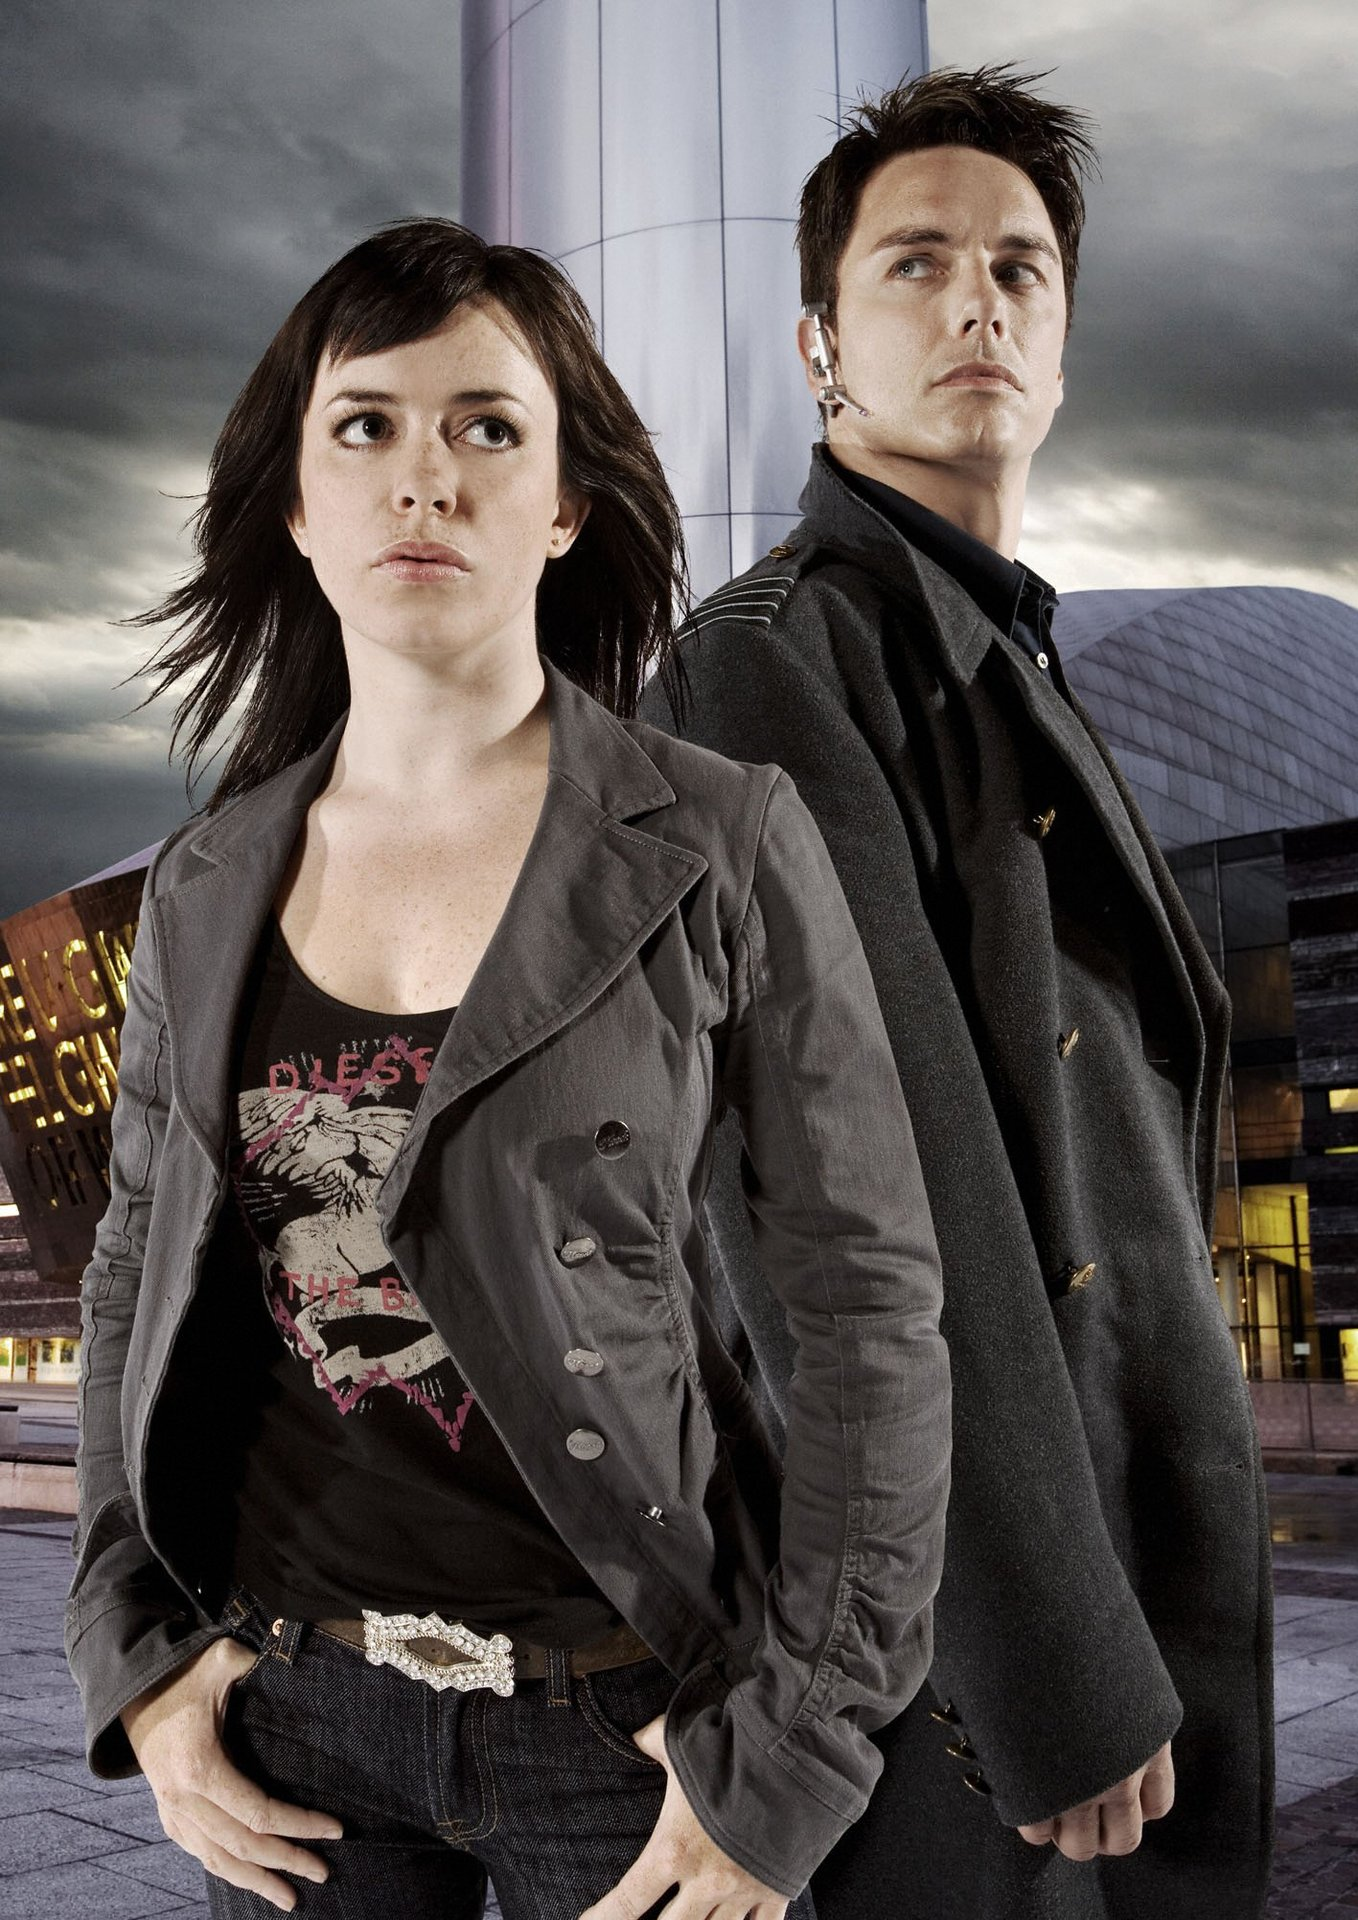 Myles Torchwood Torchwood Eve-myles Photo